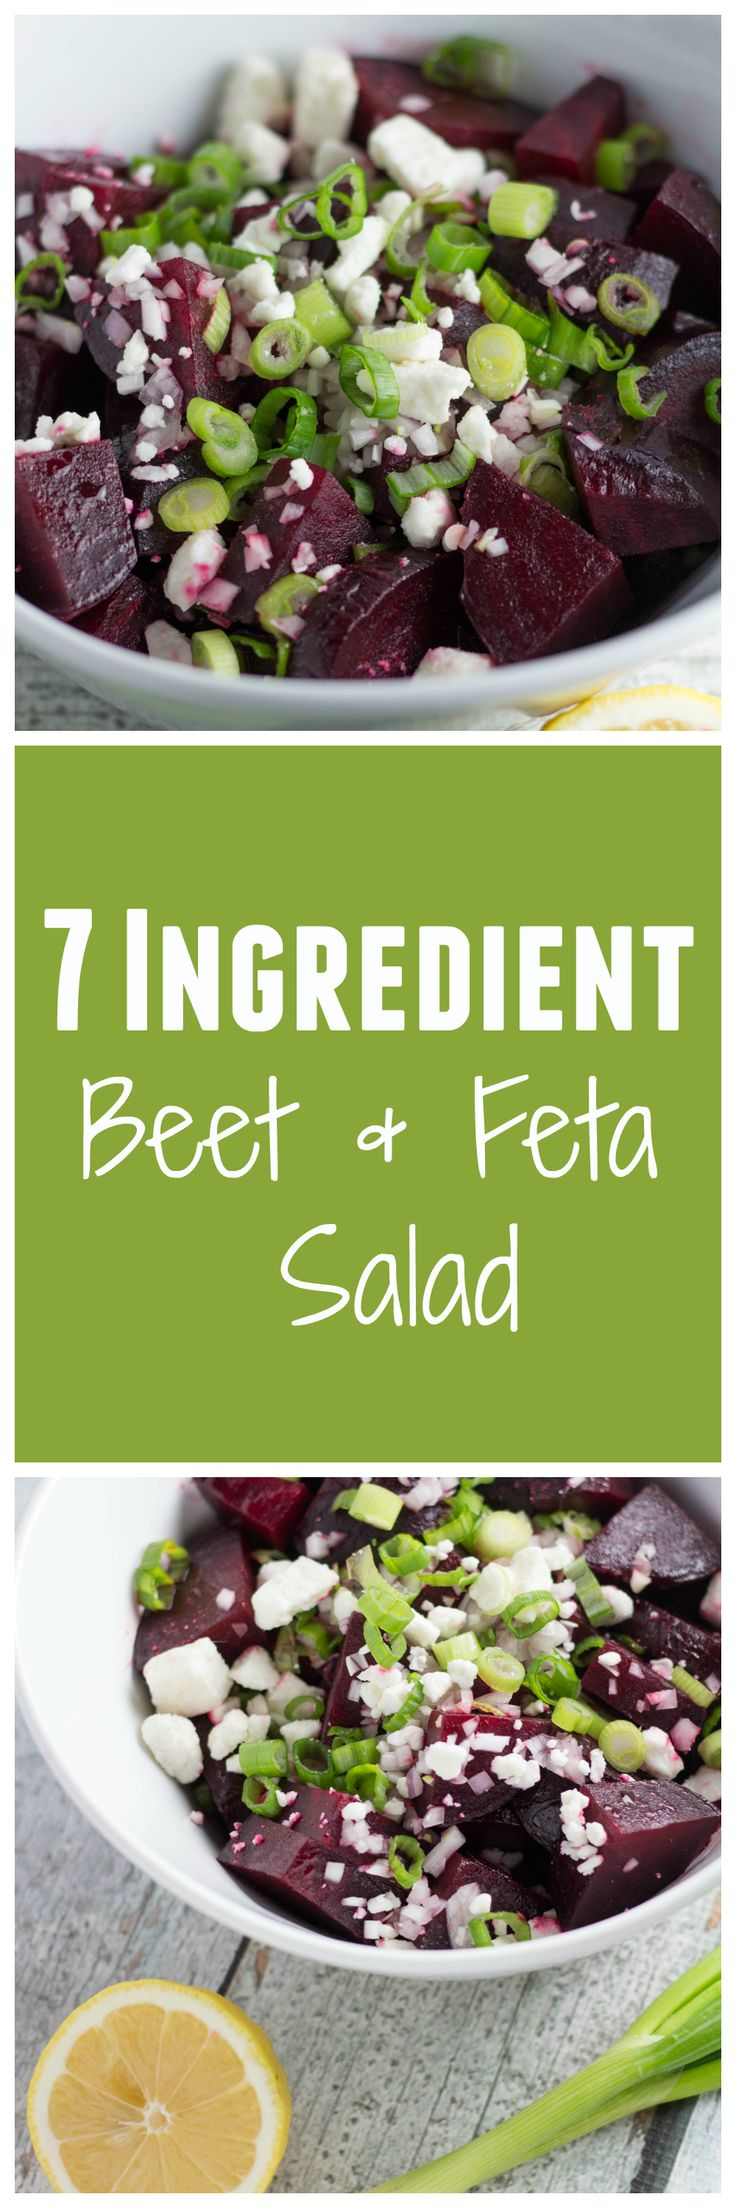 Flavorful Spring Salad! 7-Ingredient Beet and Feta Salad is one for the books! |Krollskorner.com